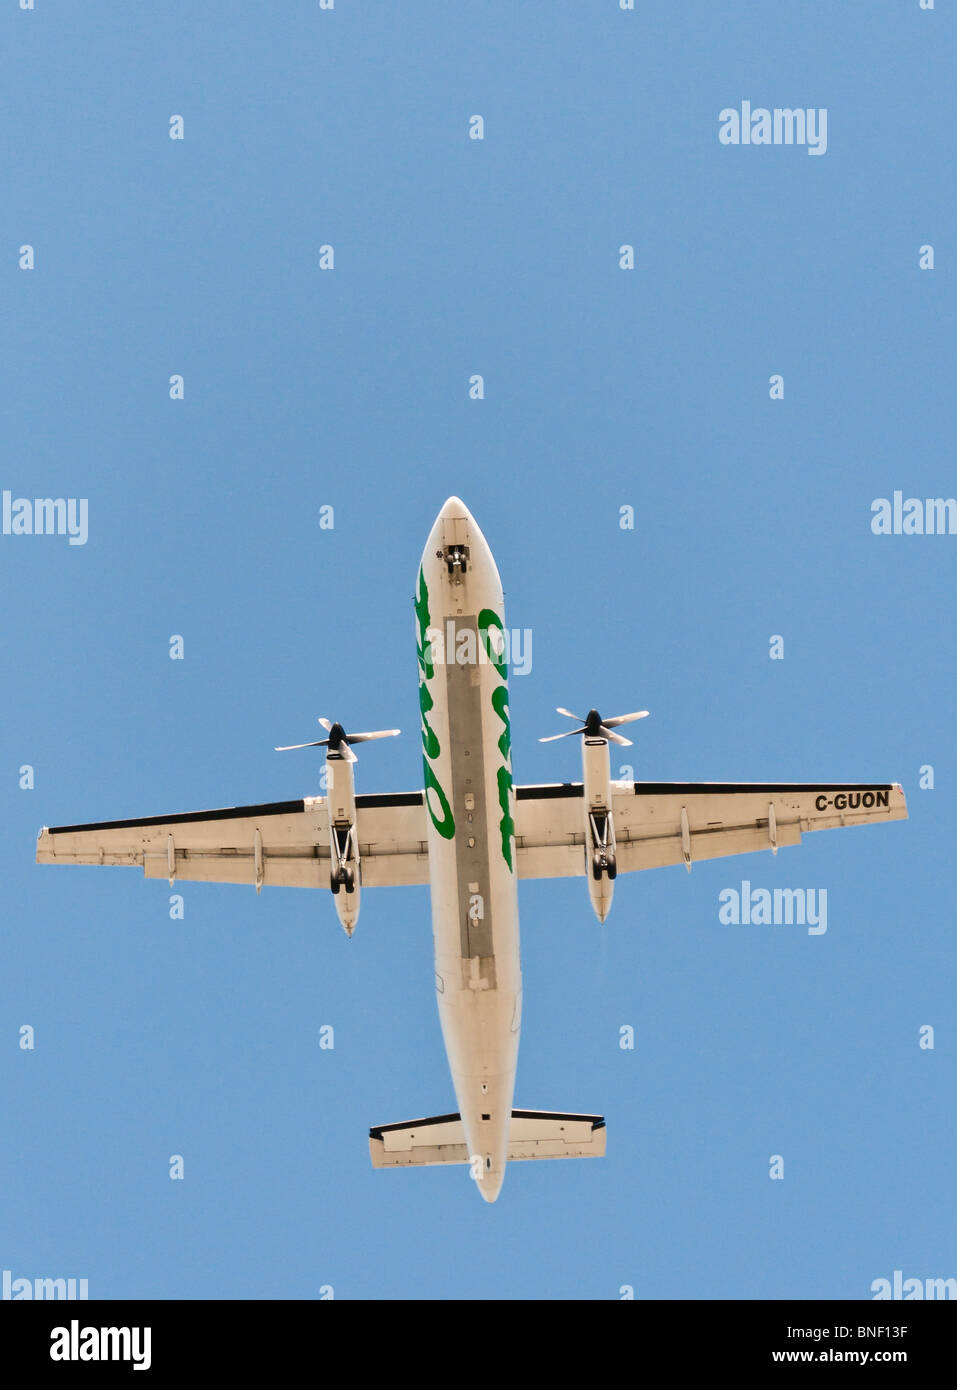 Looking straight up at an Air Canada Jazz Dash-8 commercial airliner on final approach for landing . Stock Photo